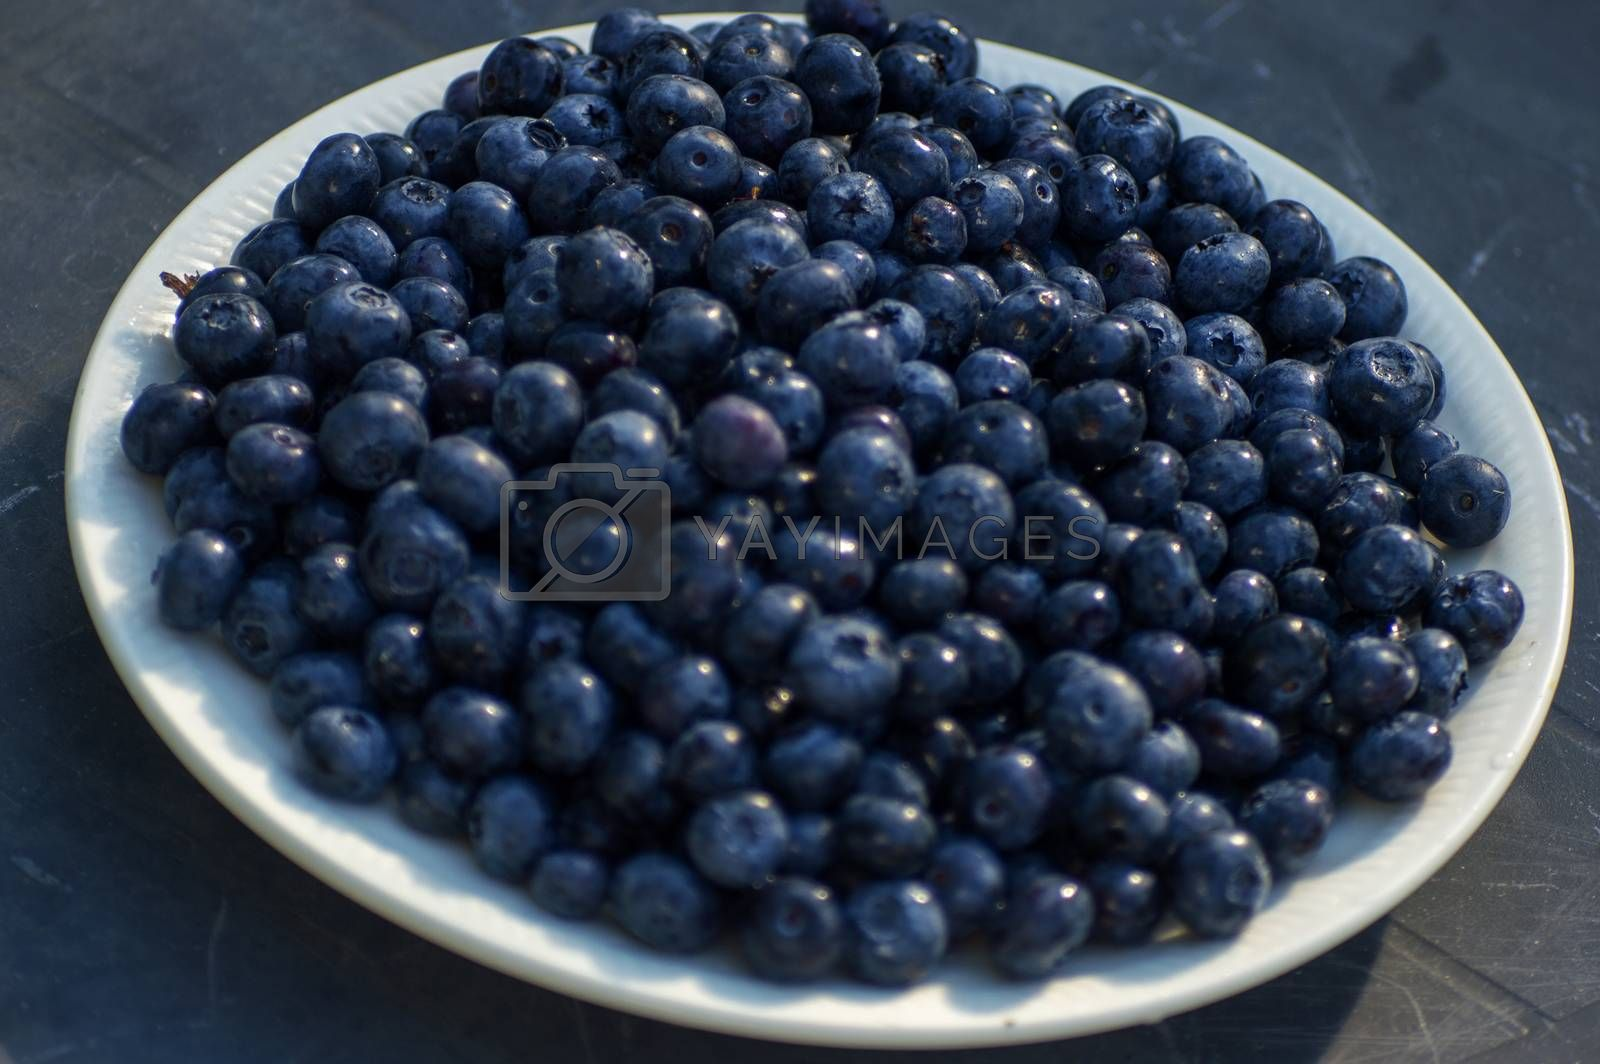 Blue blueberries closeup on plate in summer.